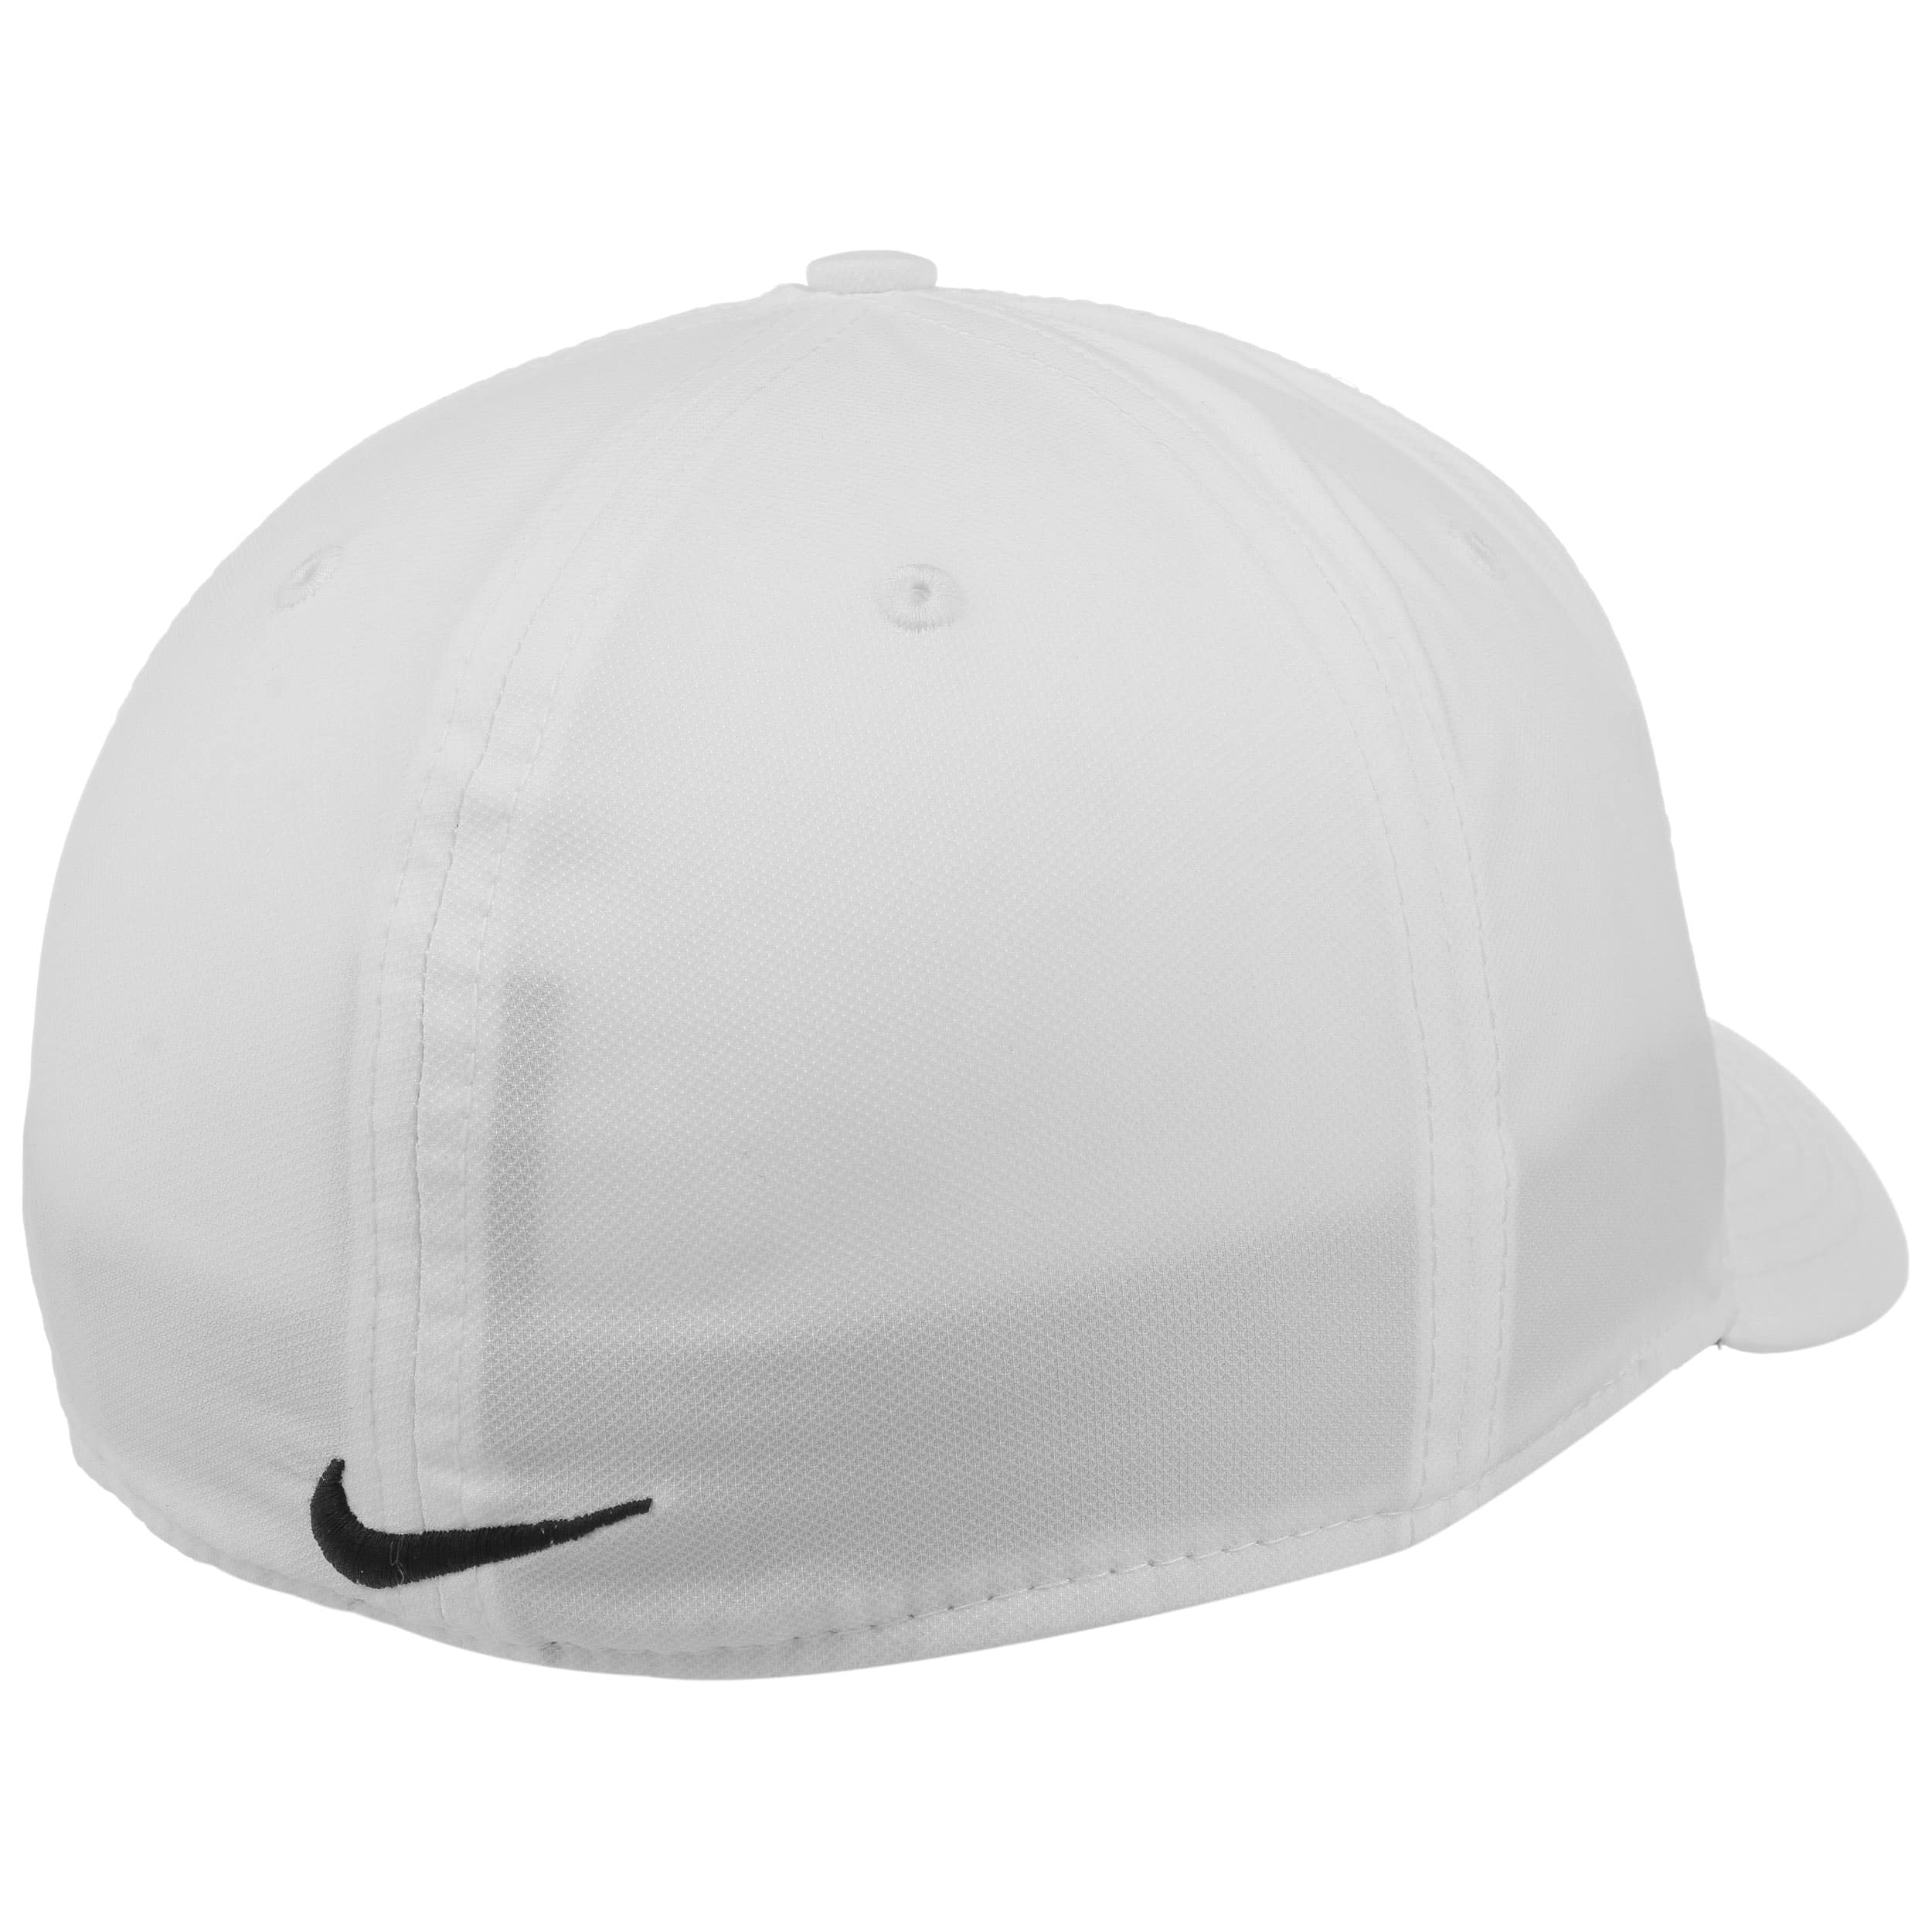 ... Golf Classic 99 Performance Cap by Nike - white 3 ... c0945927c32